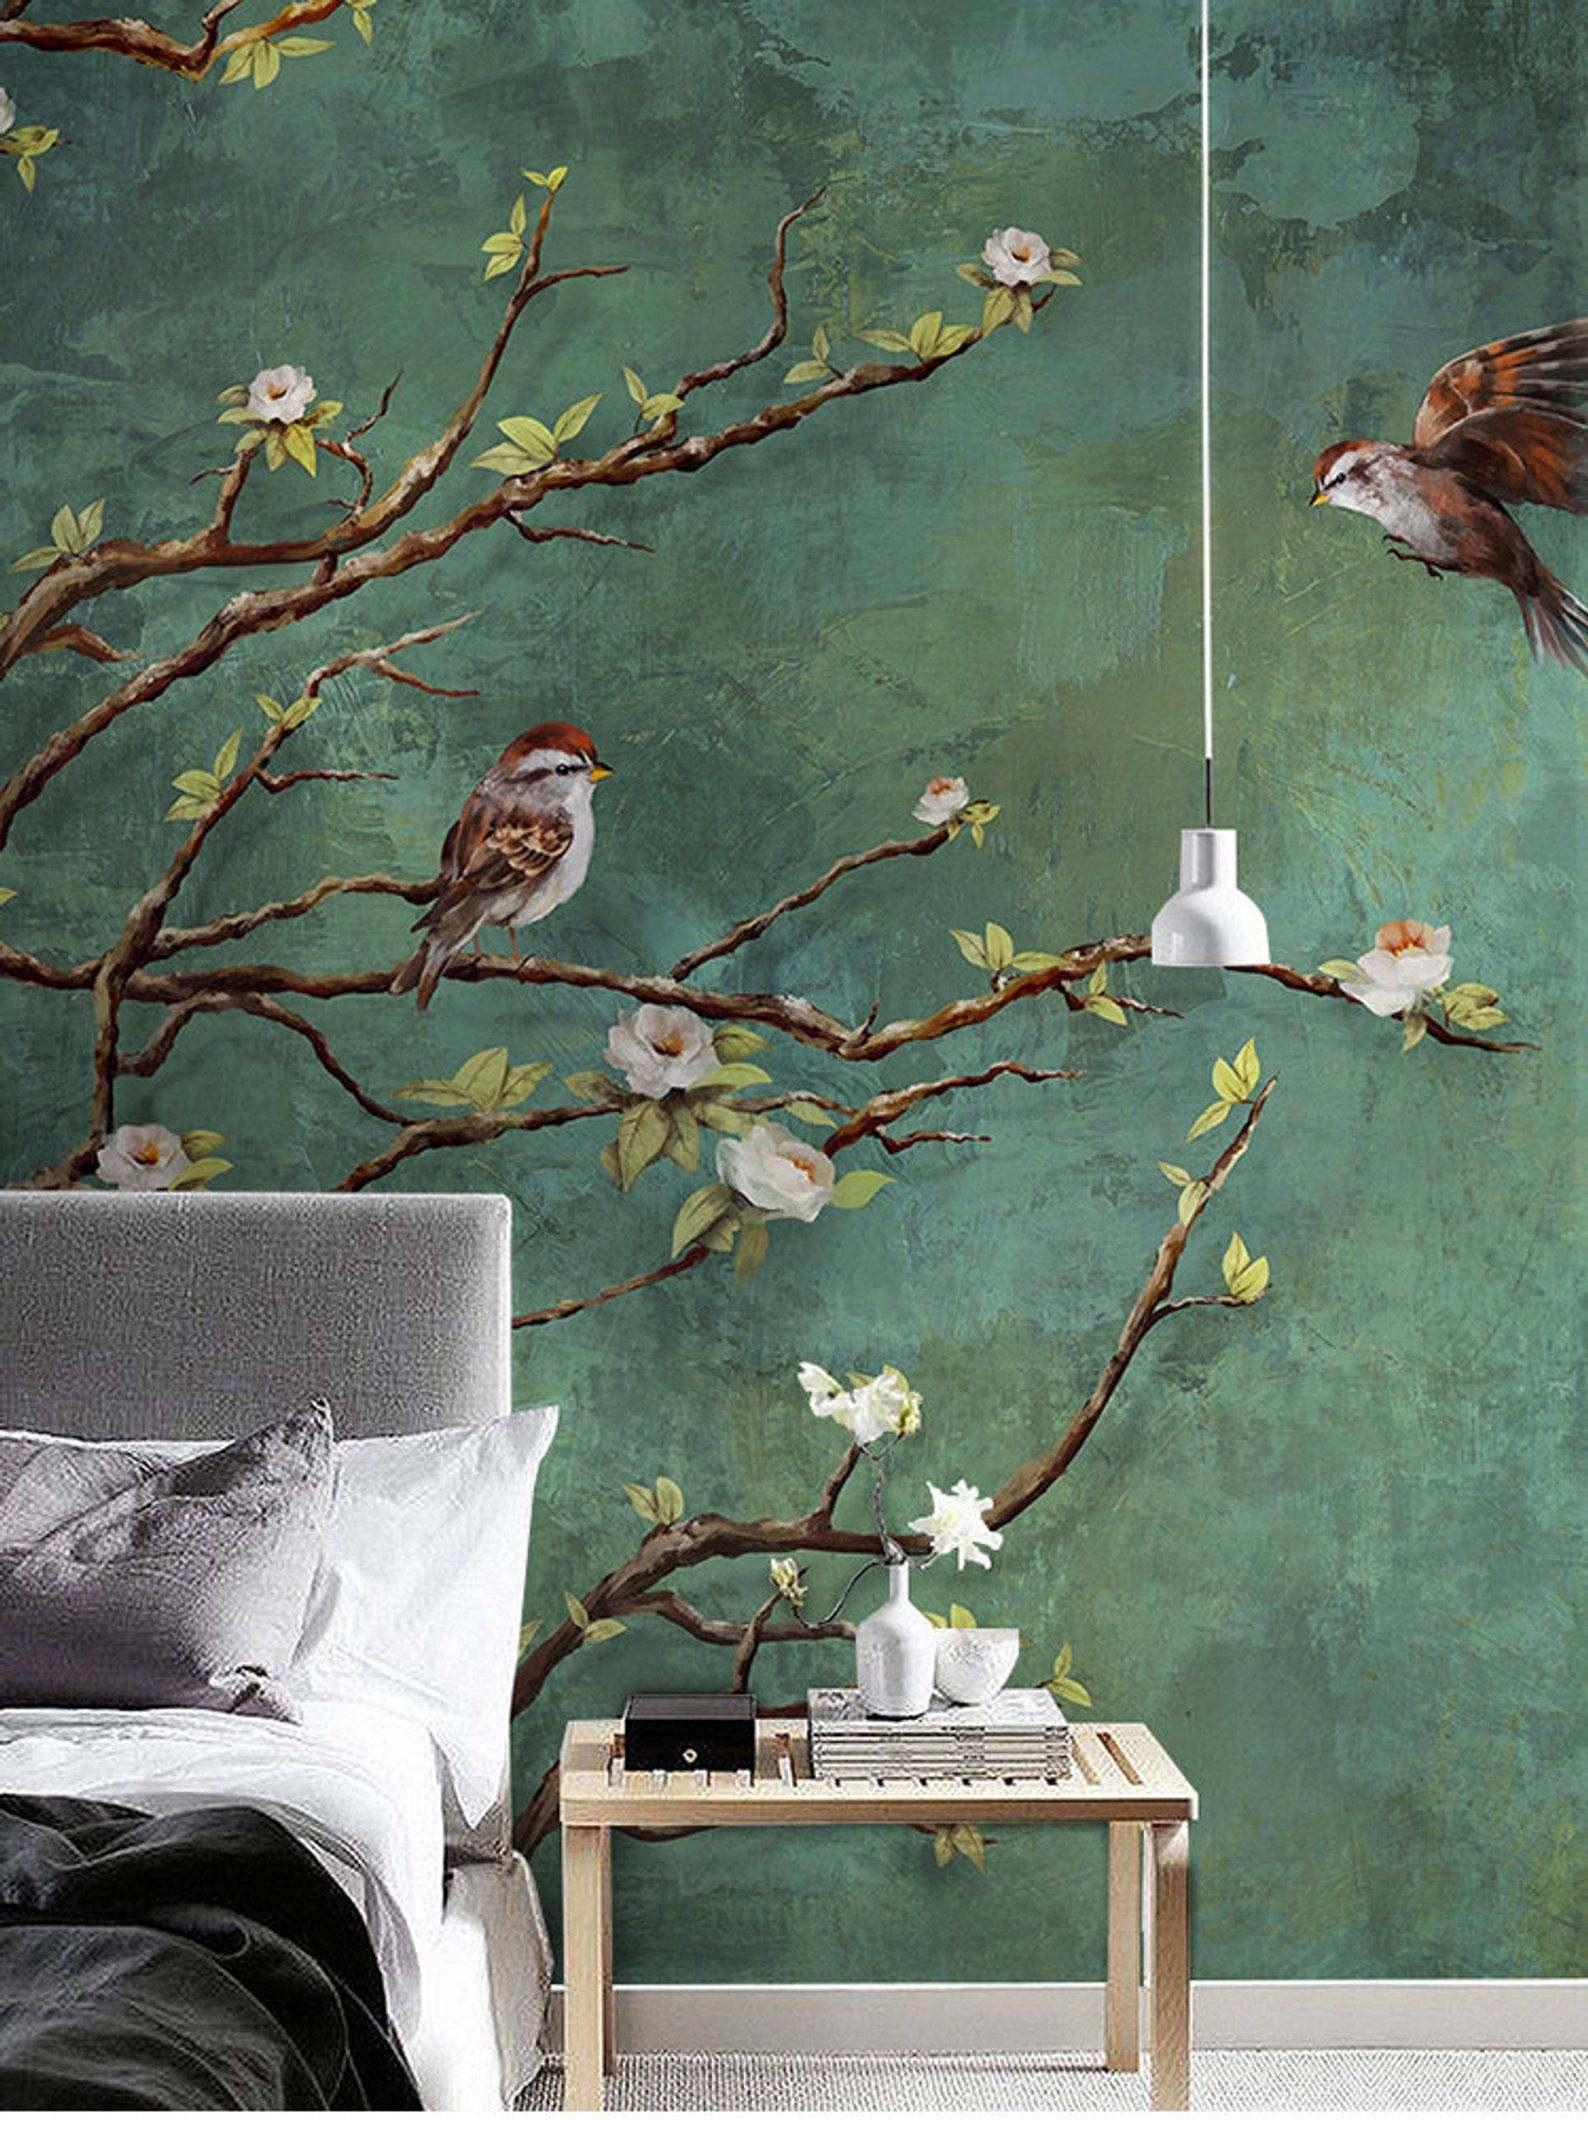 Vintage Dark Birds and Flowers Wallpaper, Nature Wall